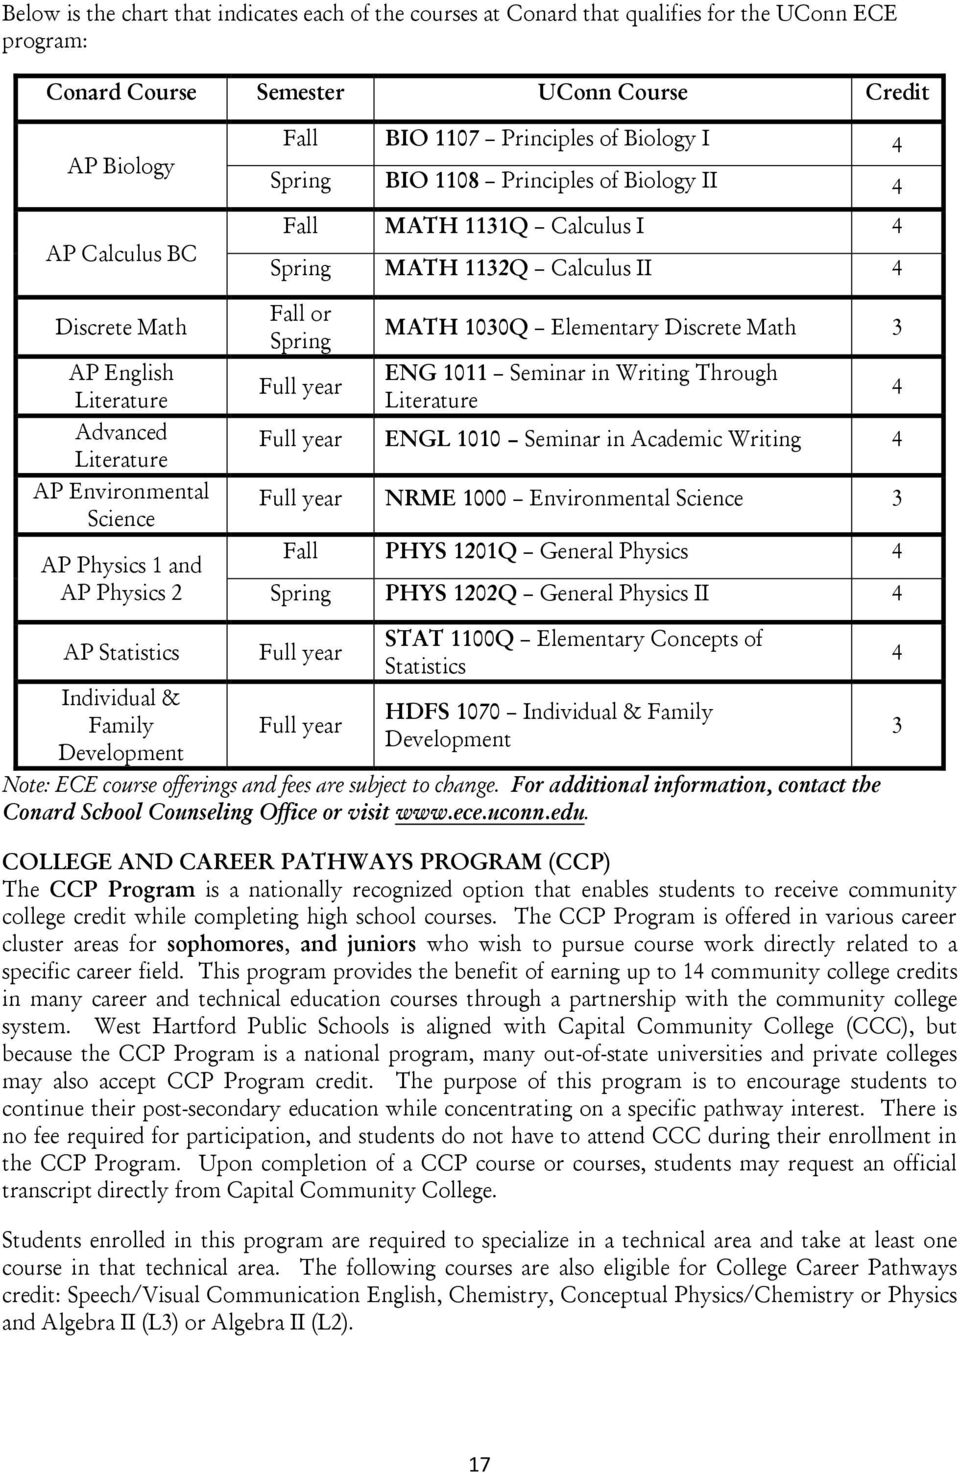 allied subjects college of chemistry accounting jobs craigslist